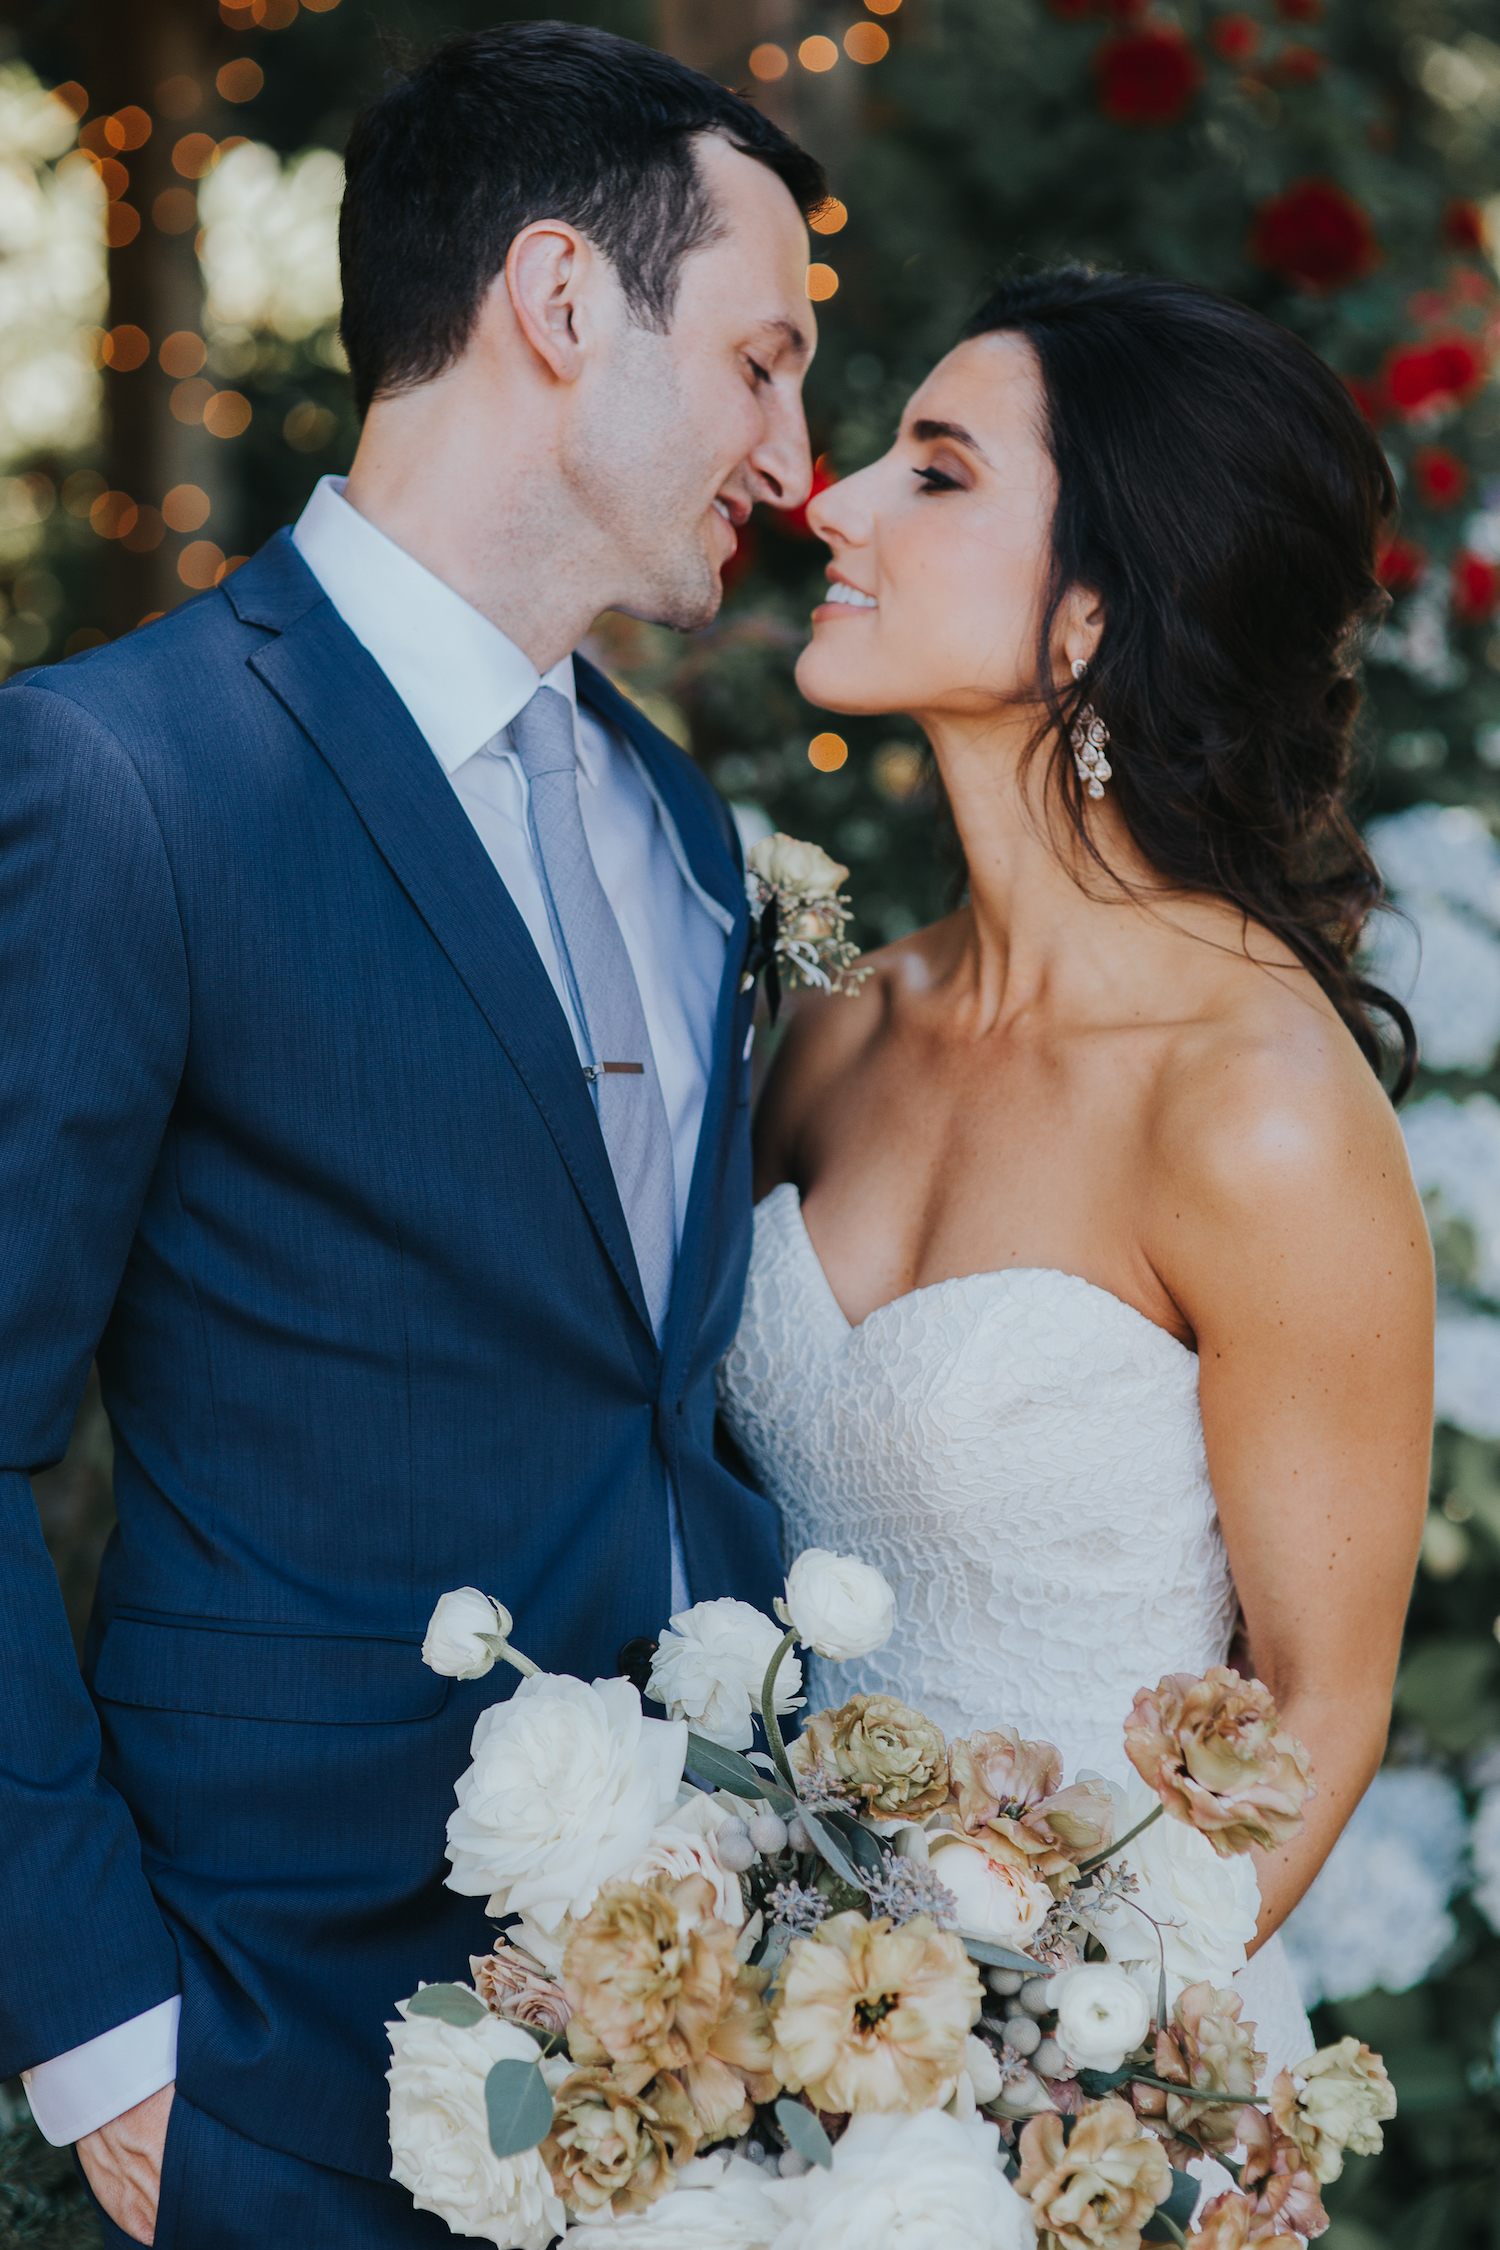 Wild Bloom Floral - Rachel Birkhofer Photography - Jessica and Phil - Real Wedding - Seattle 17.jpeg